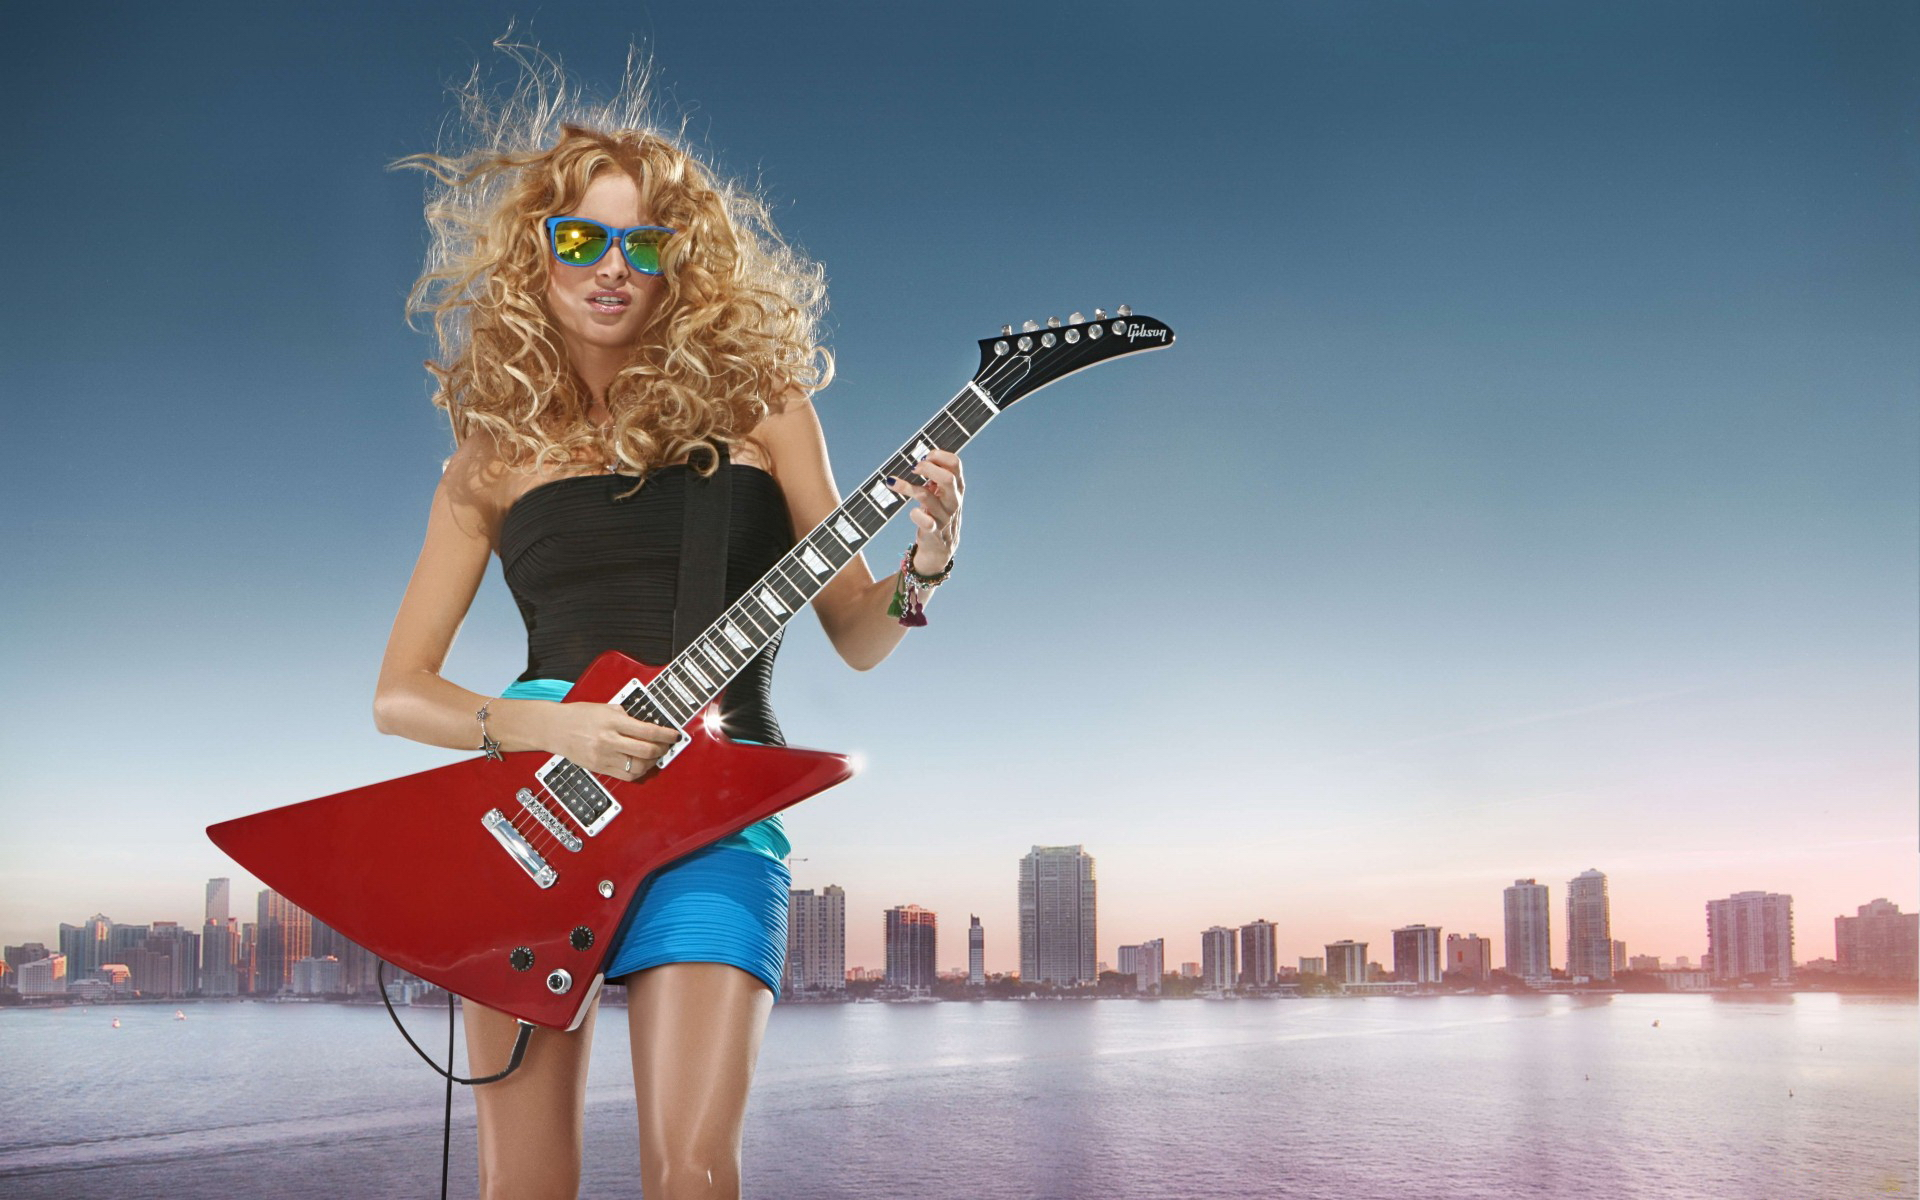 entertainment music guitars strings musical instuments women females girls sensual sexy babes models blondes